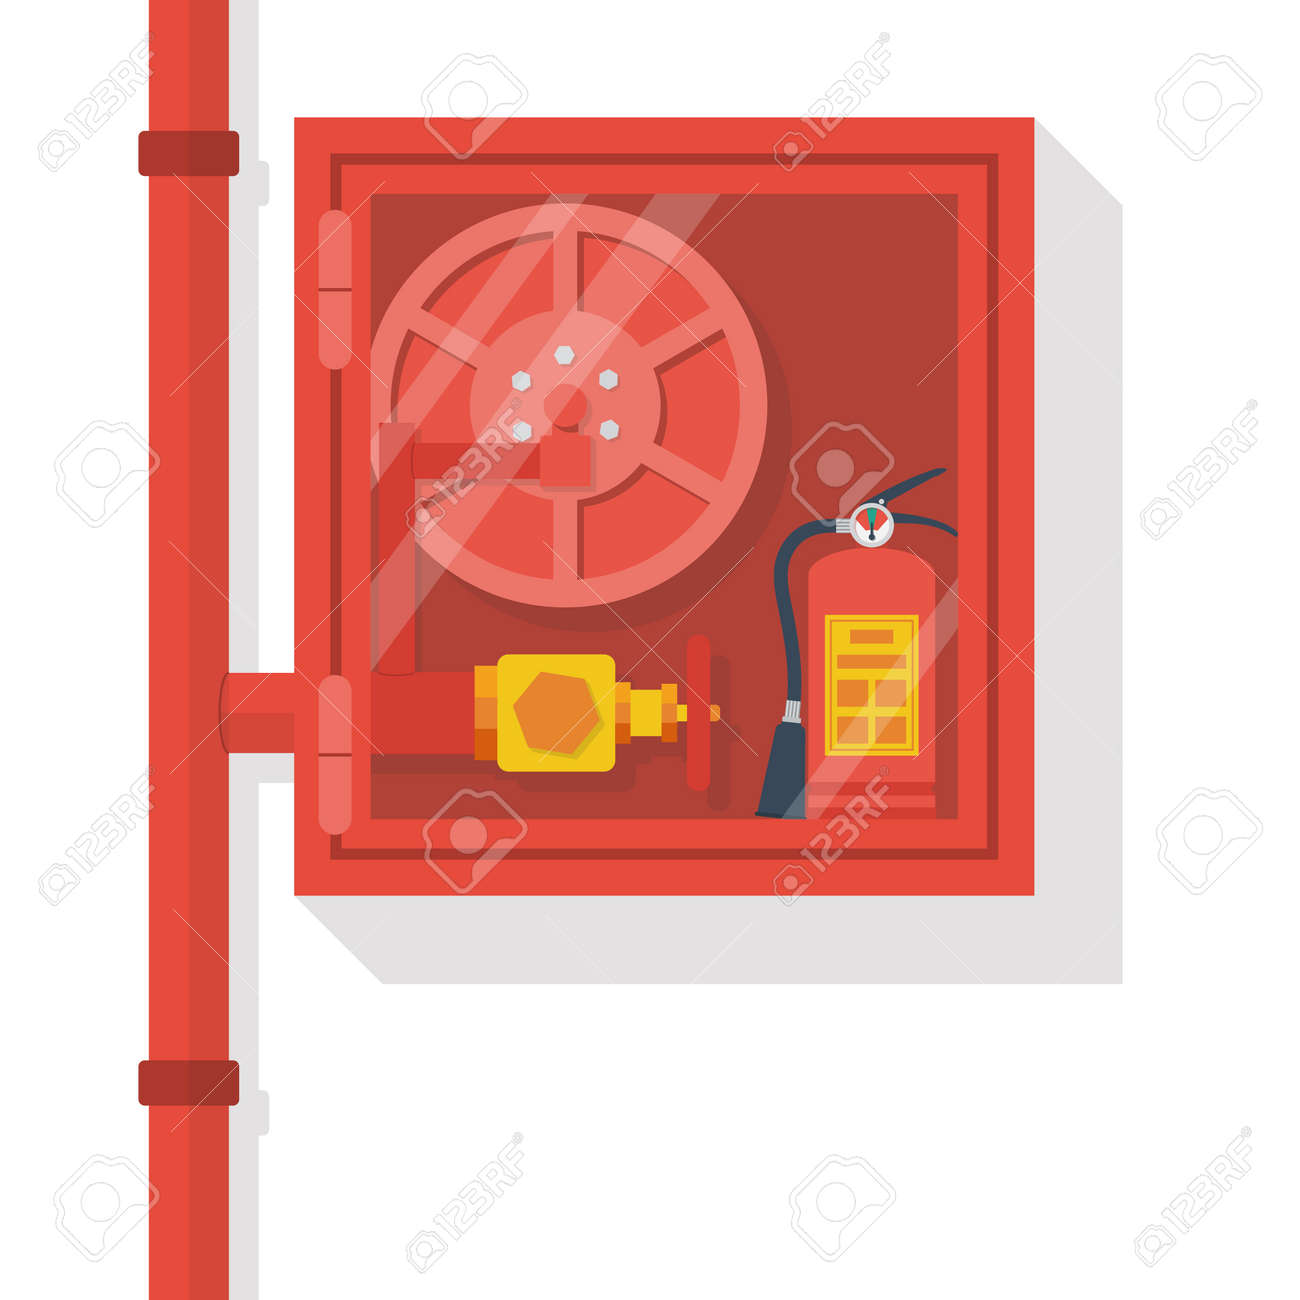 American Fire Hose And Cabinet Fire Hose Cabinet Isolate In White Background Royalty Free